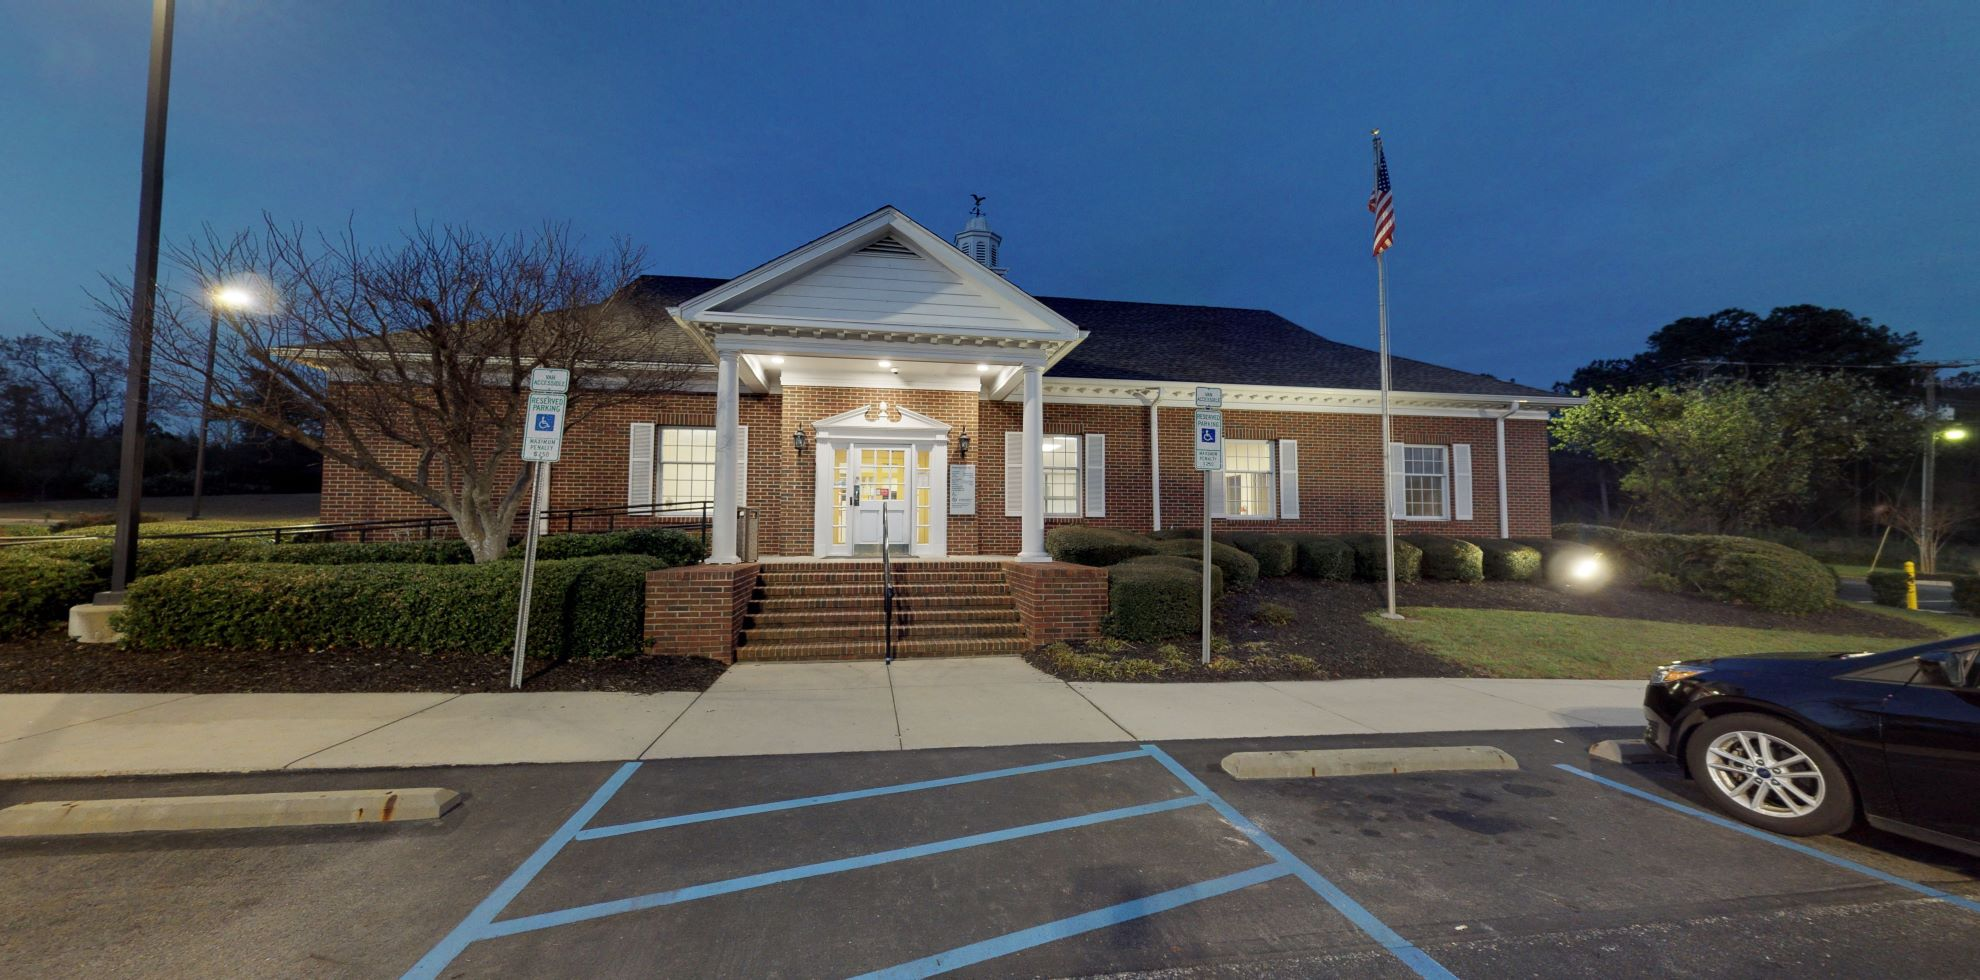 Bank of America financial center with drive-thru ATM and teller | 441 W Martintown Rd, North Augusta, SC 29841